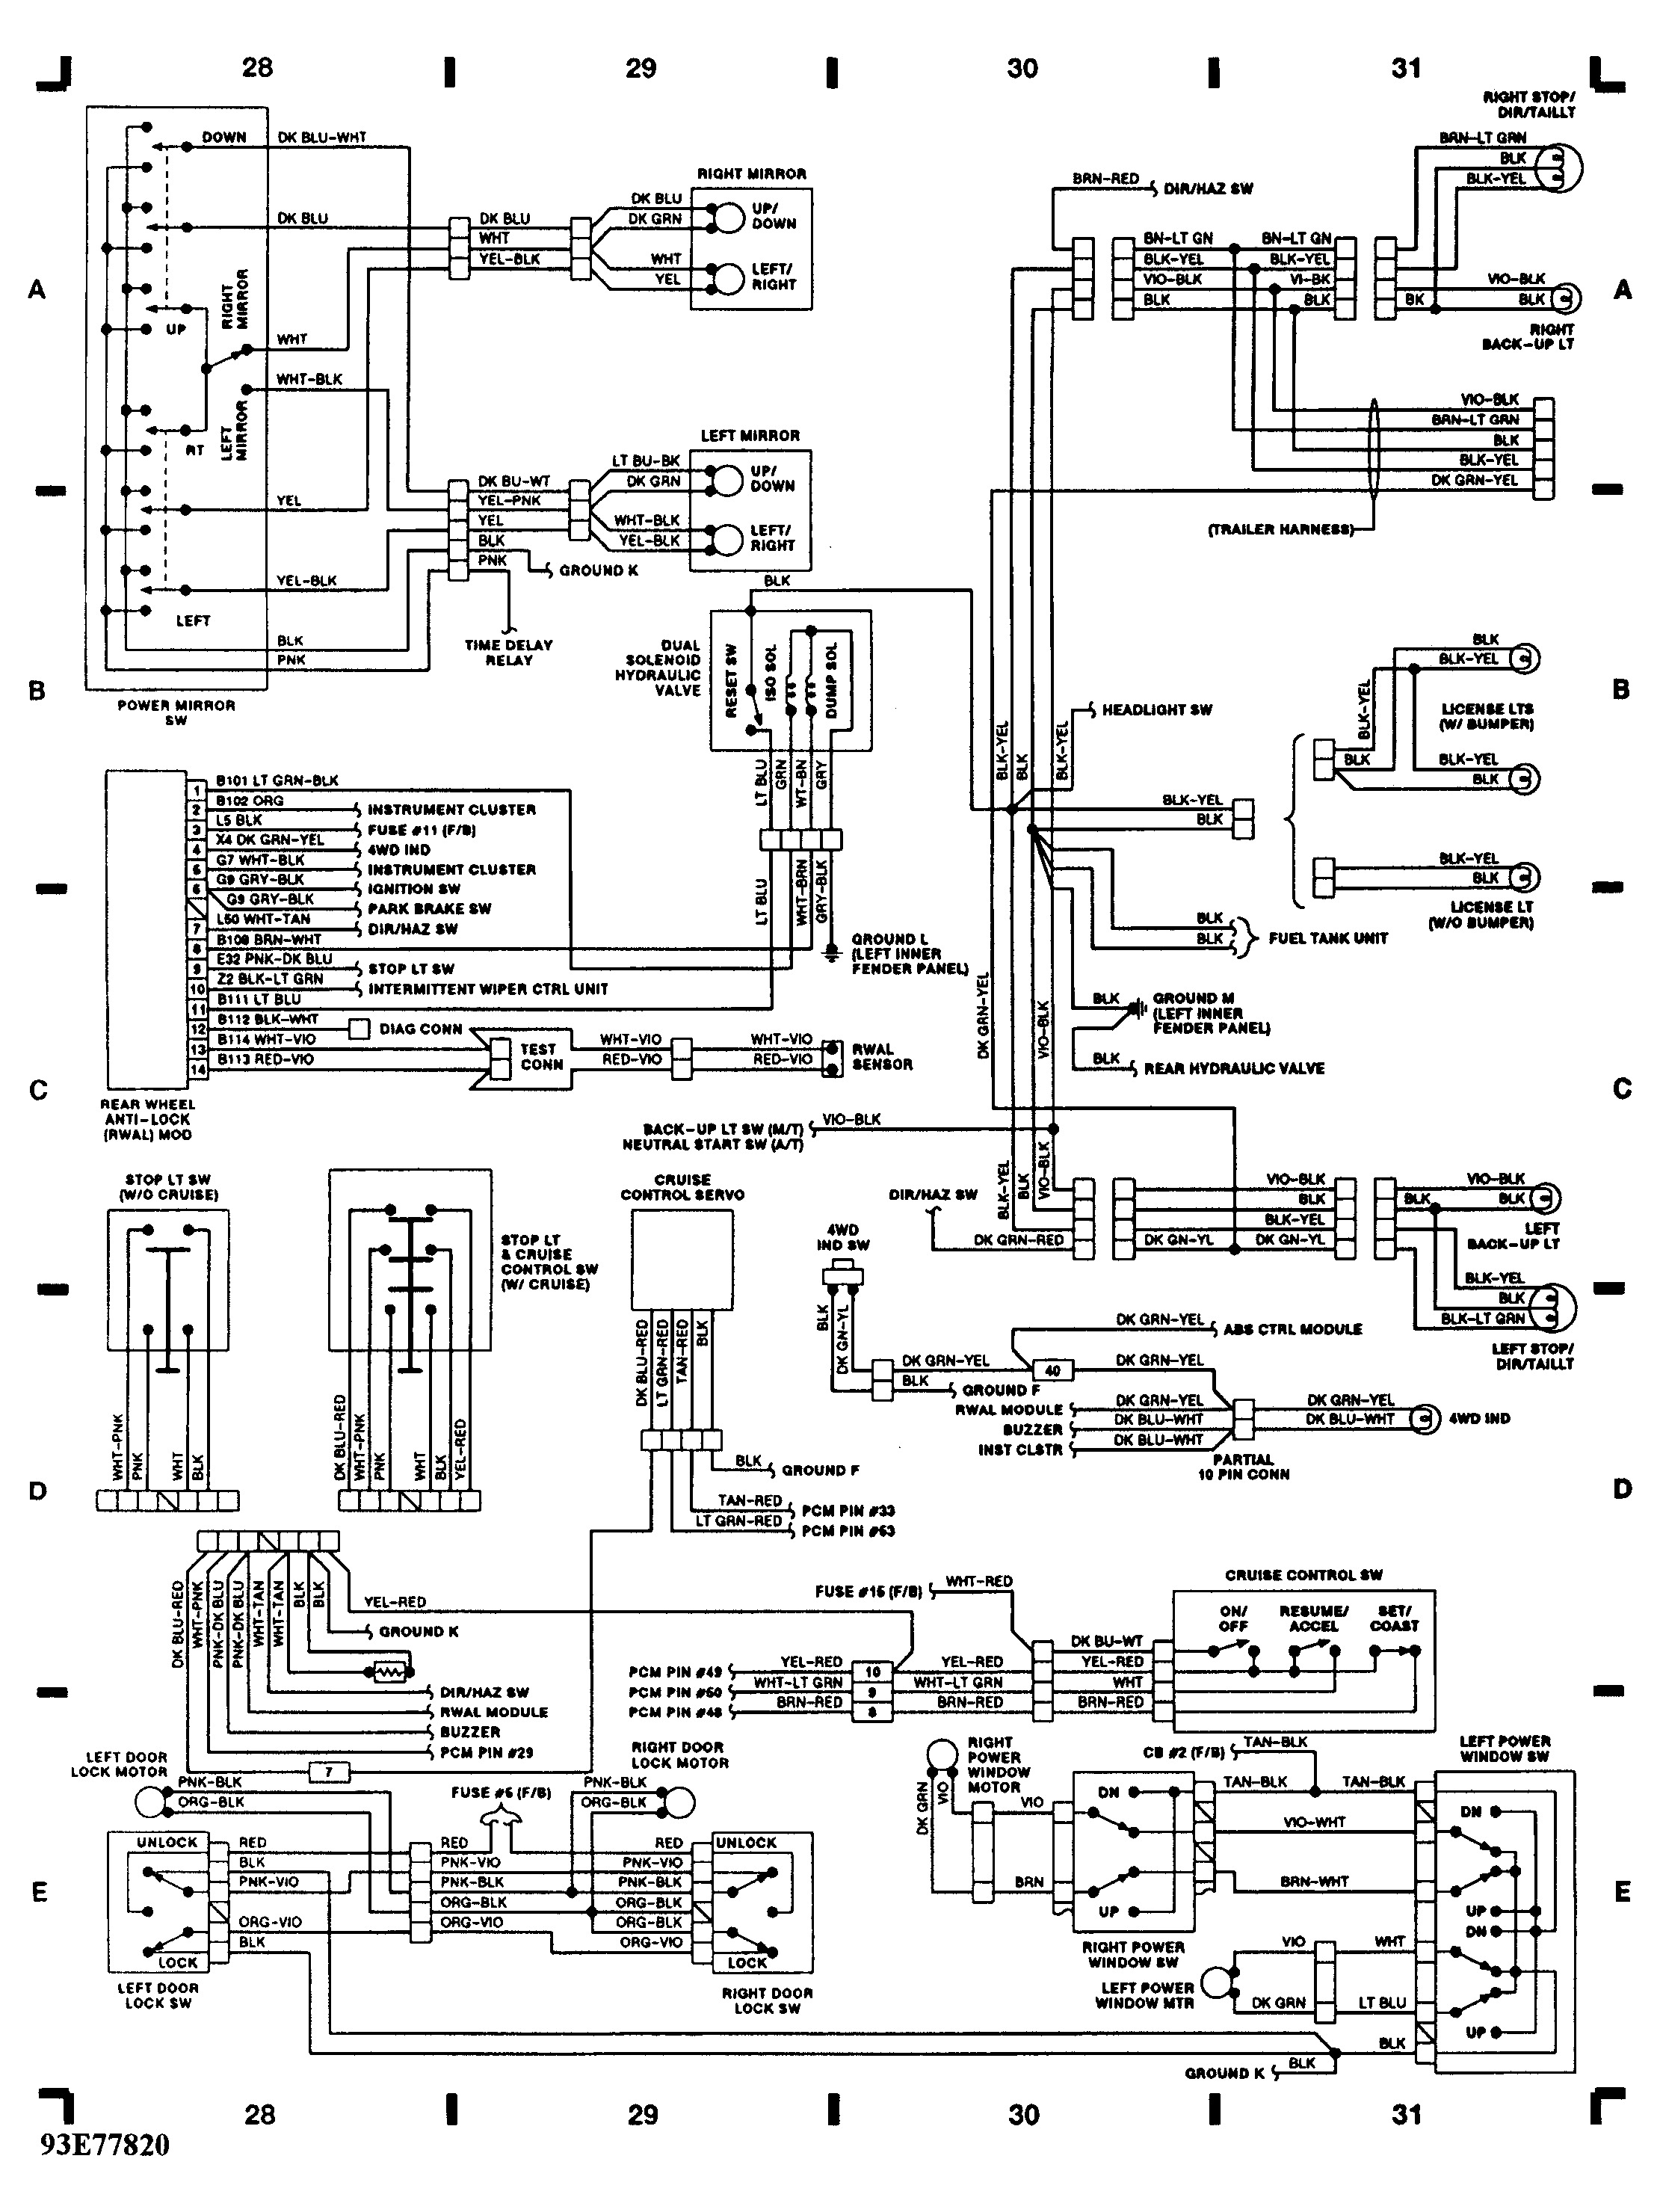 1998 Dodge Van Wiring Diagram. 1998. Free Wiring Diagrams